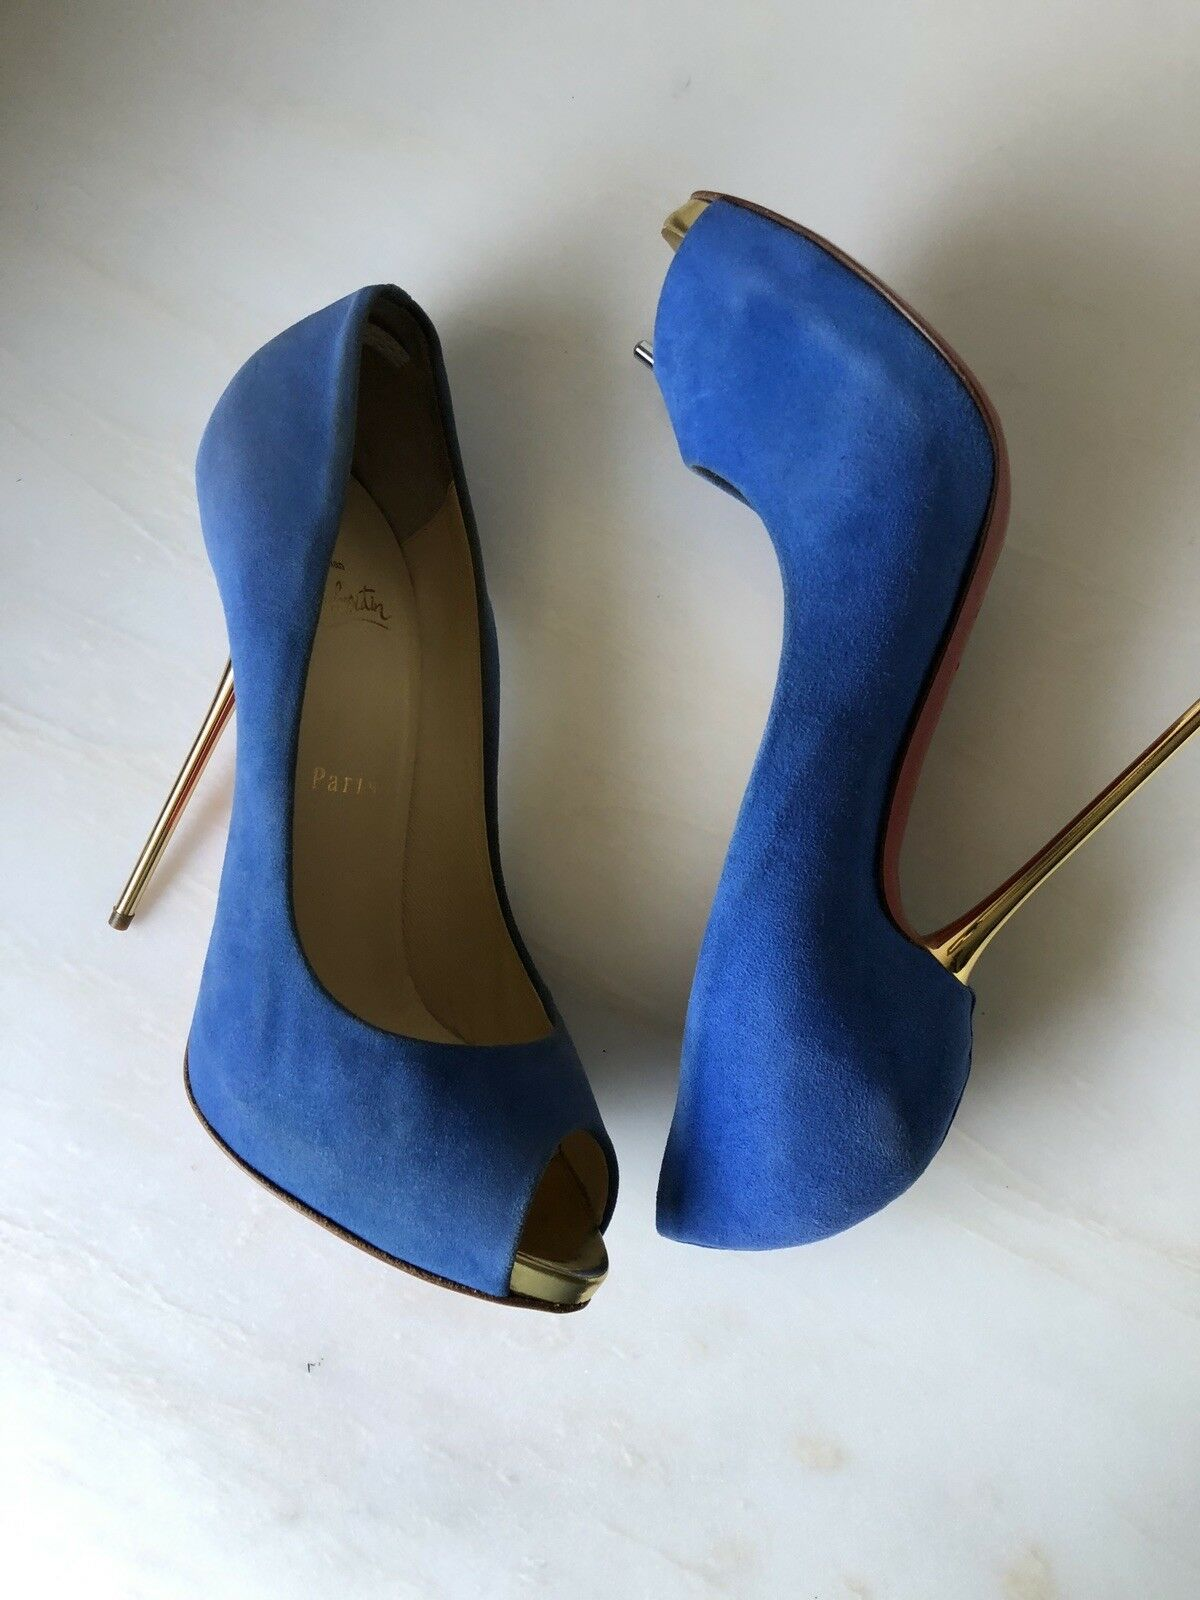 Preowned Christian Louboutin bluee Suede Open Lips 120 Pumps size 38.5